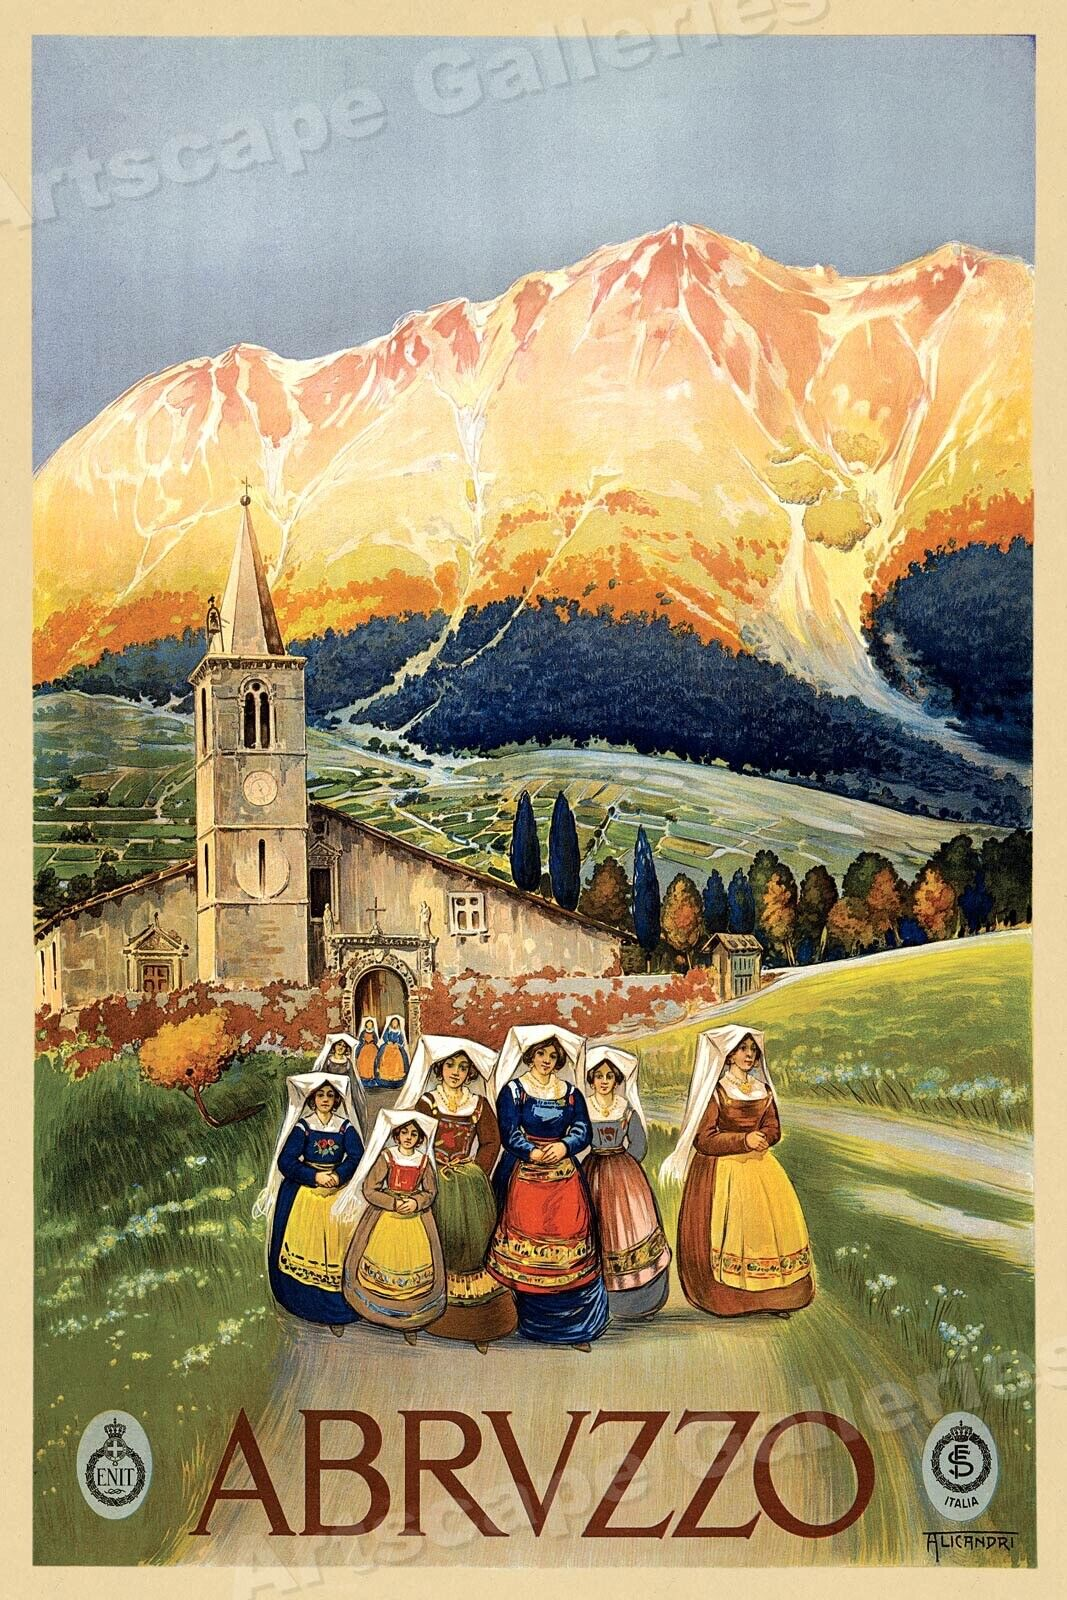 Abruzzo Italy Vintage Italian Travel Poster Rolled Canvas Giclee Print 24x32 in.